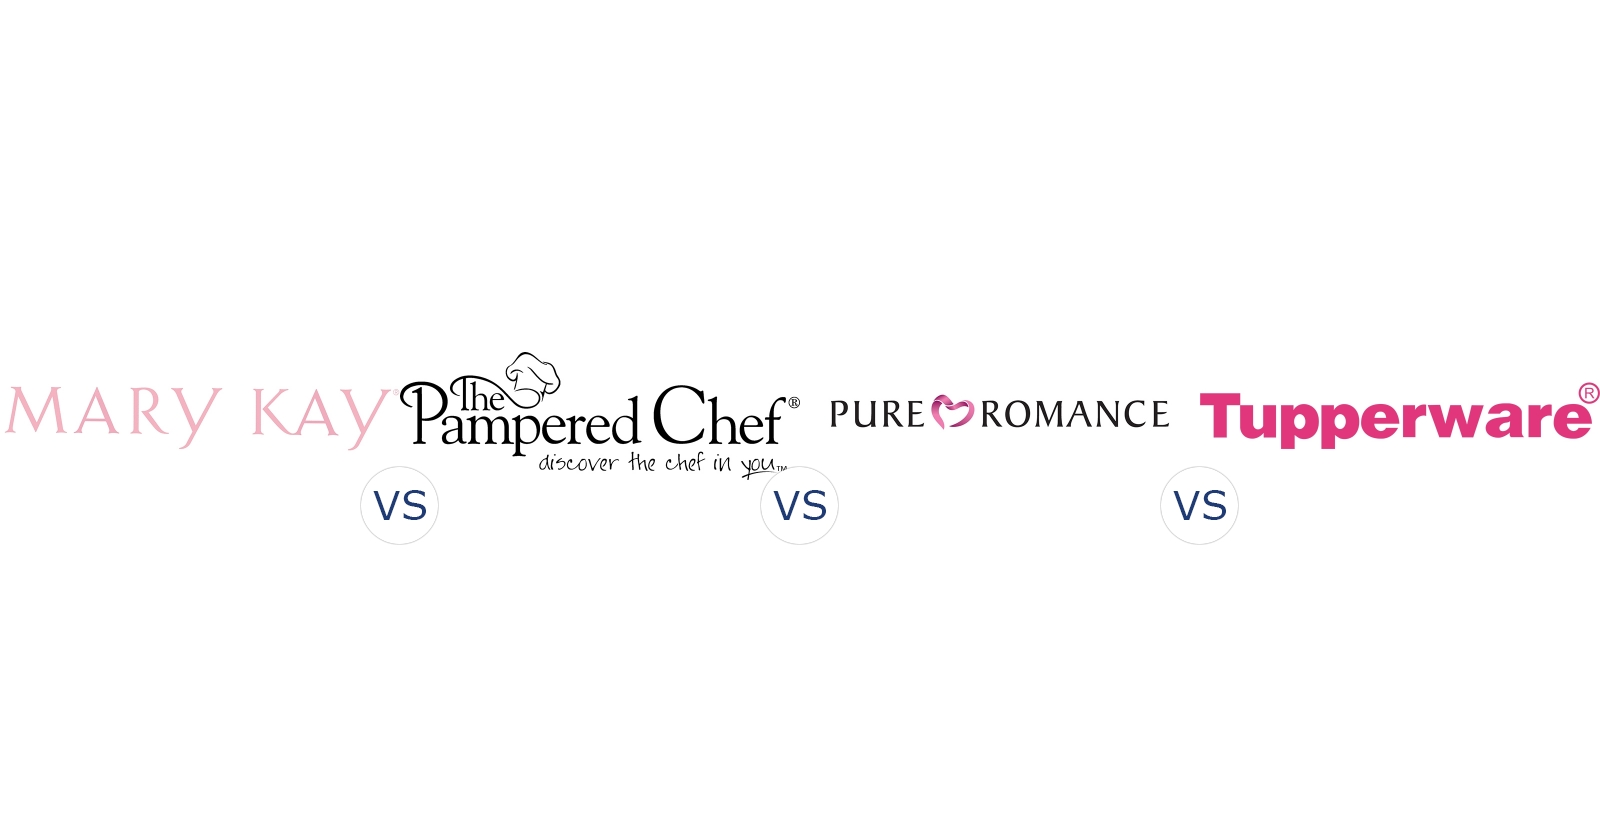 Mary Kay Vs Pampered Chef Vs Pure Romance Vs Tupperware Compare